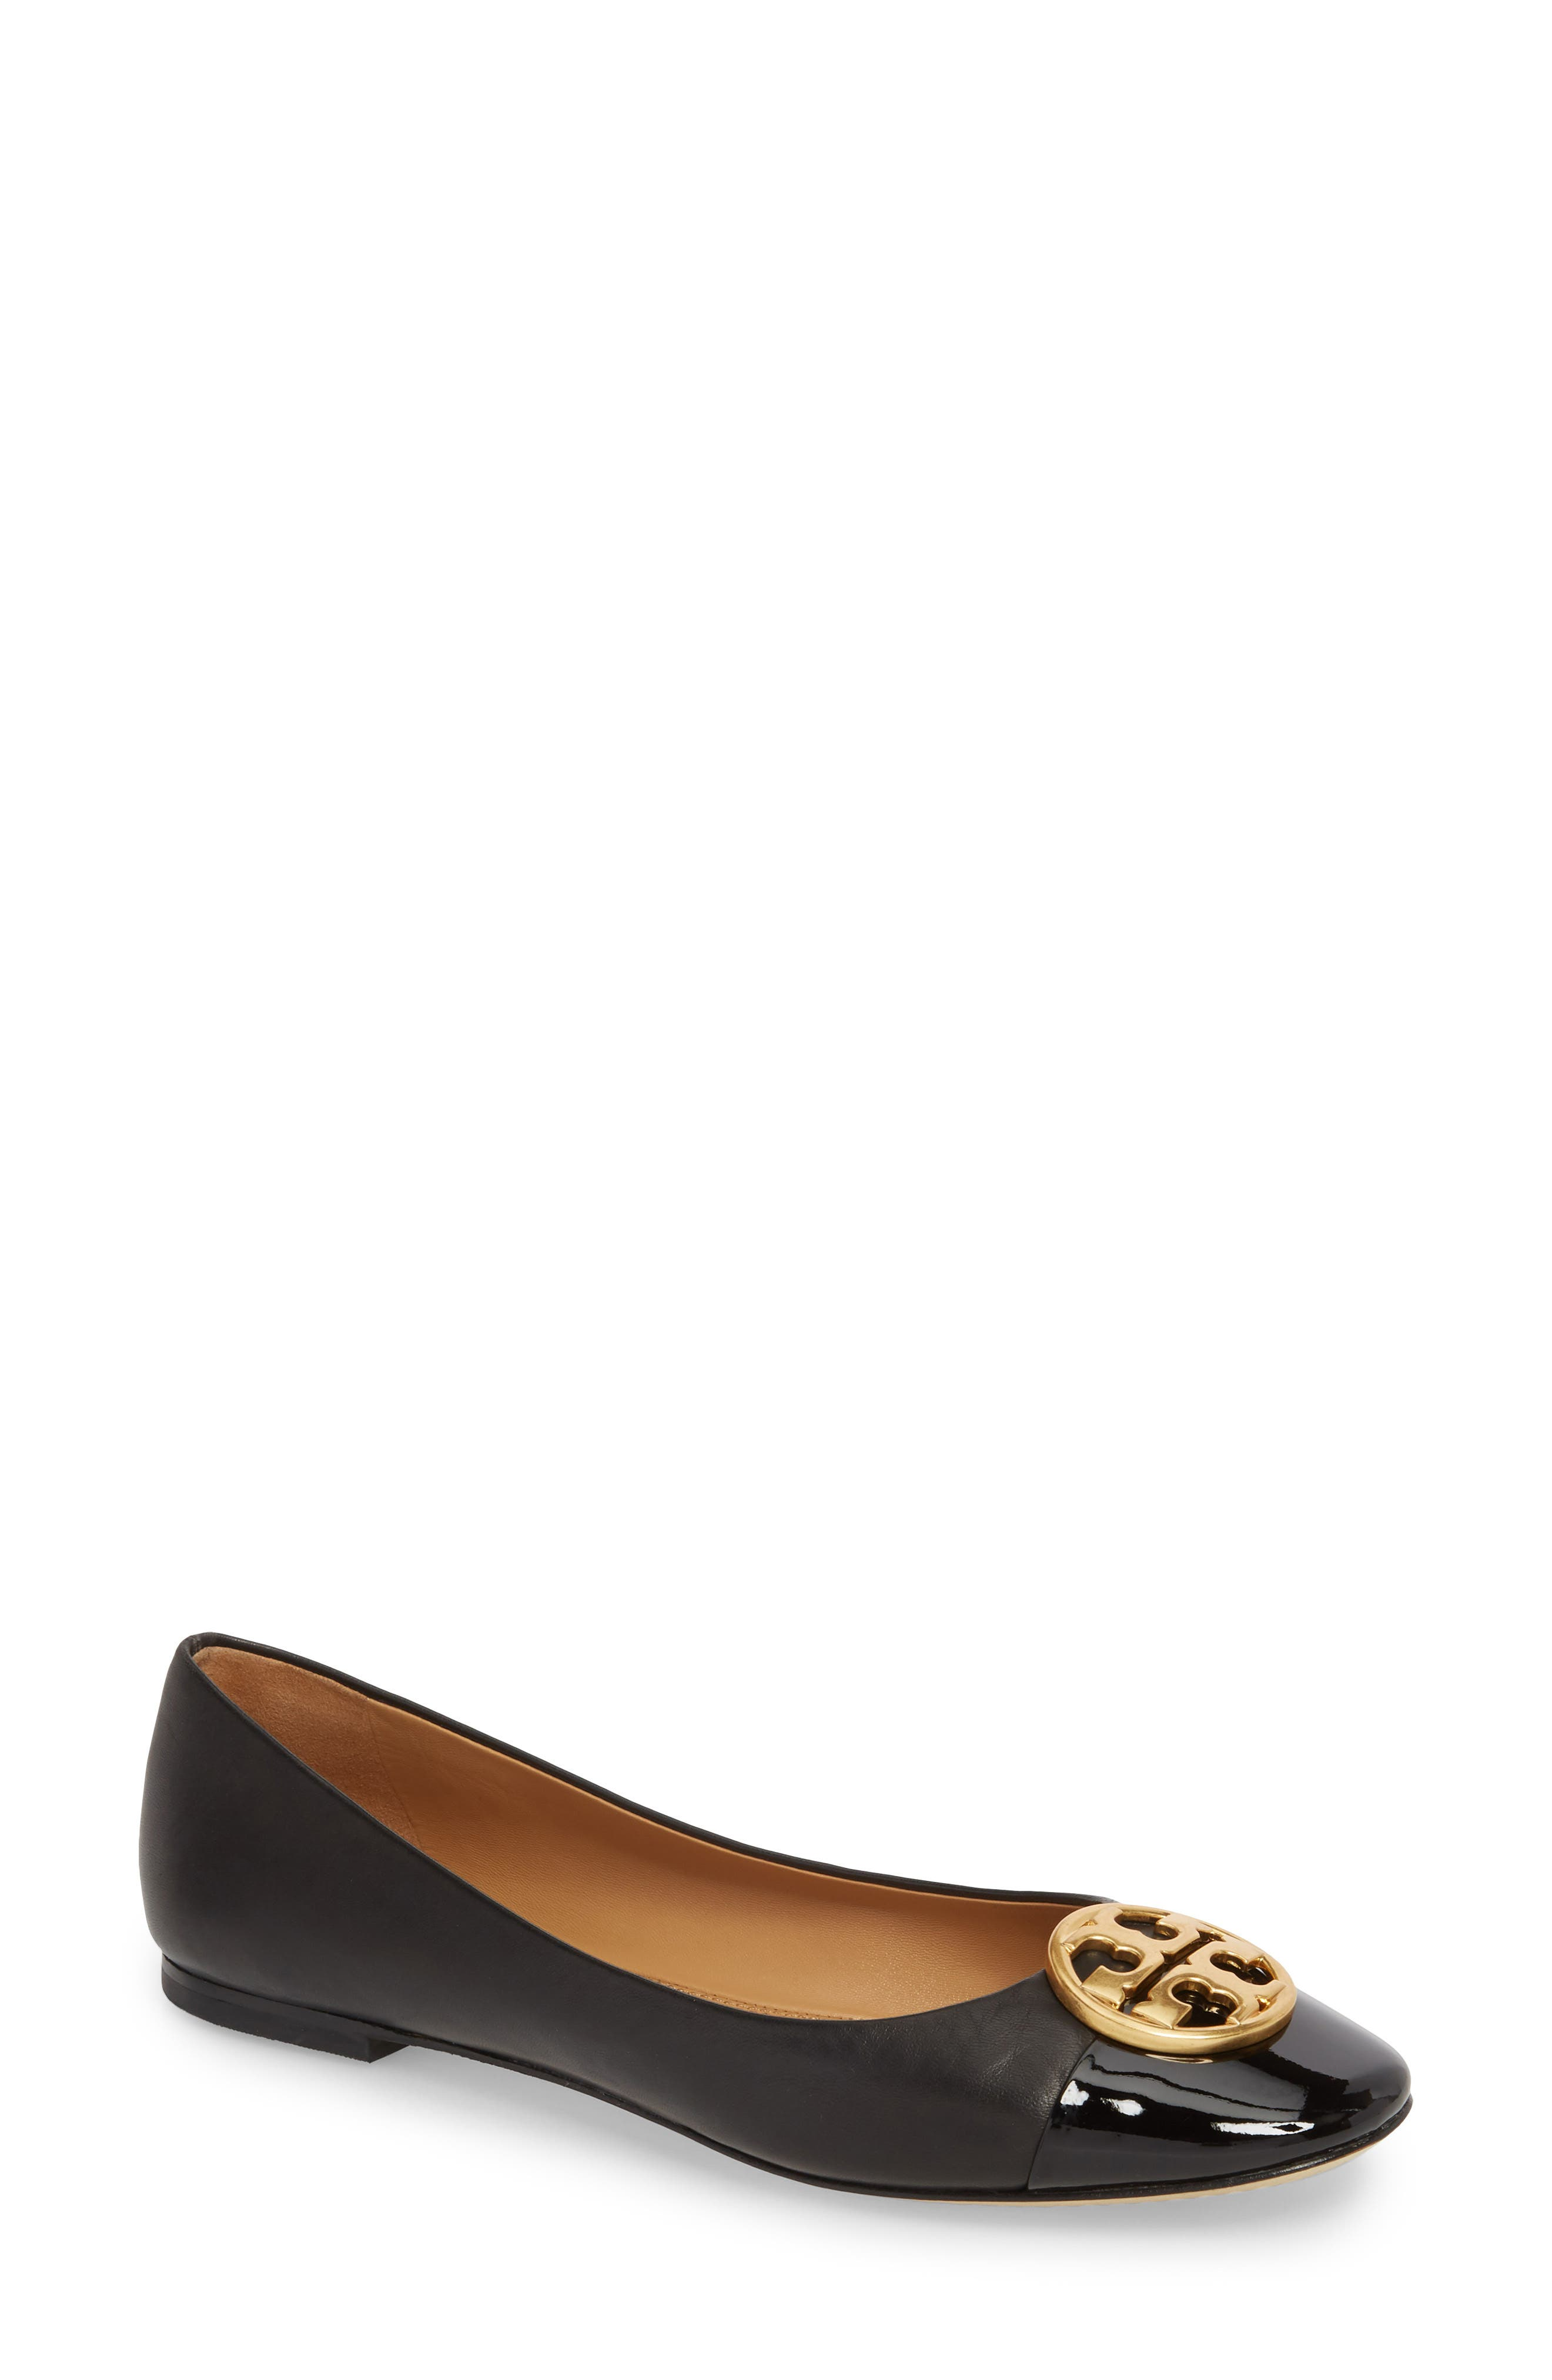 Elizabeth and James Chain-Link Cap-Toe Flats cheap collections v8ouf